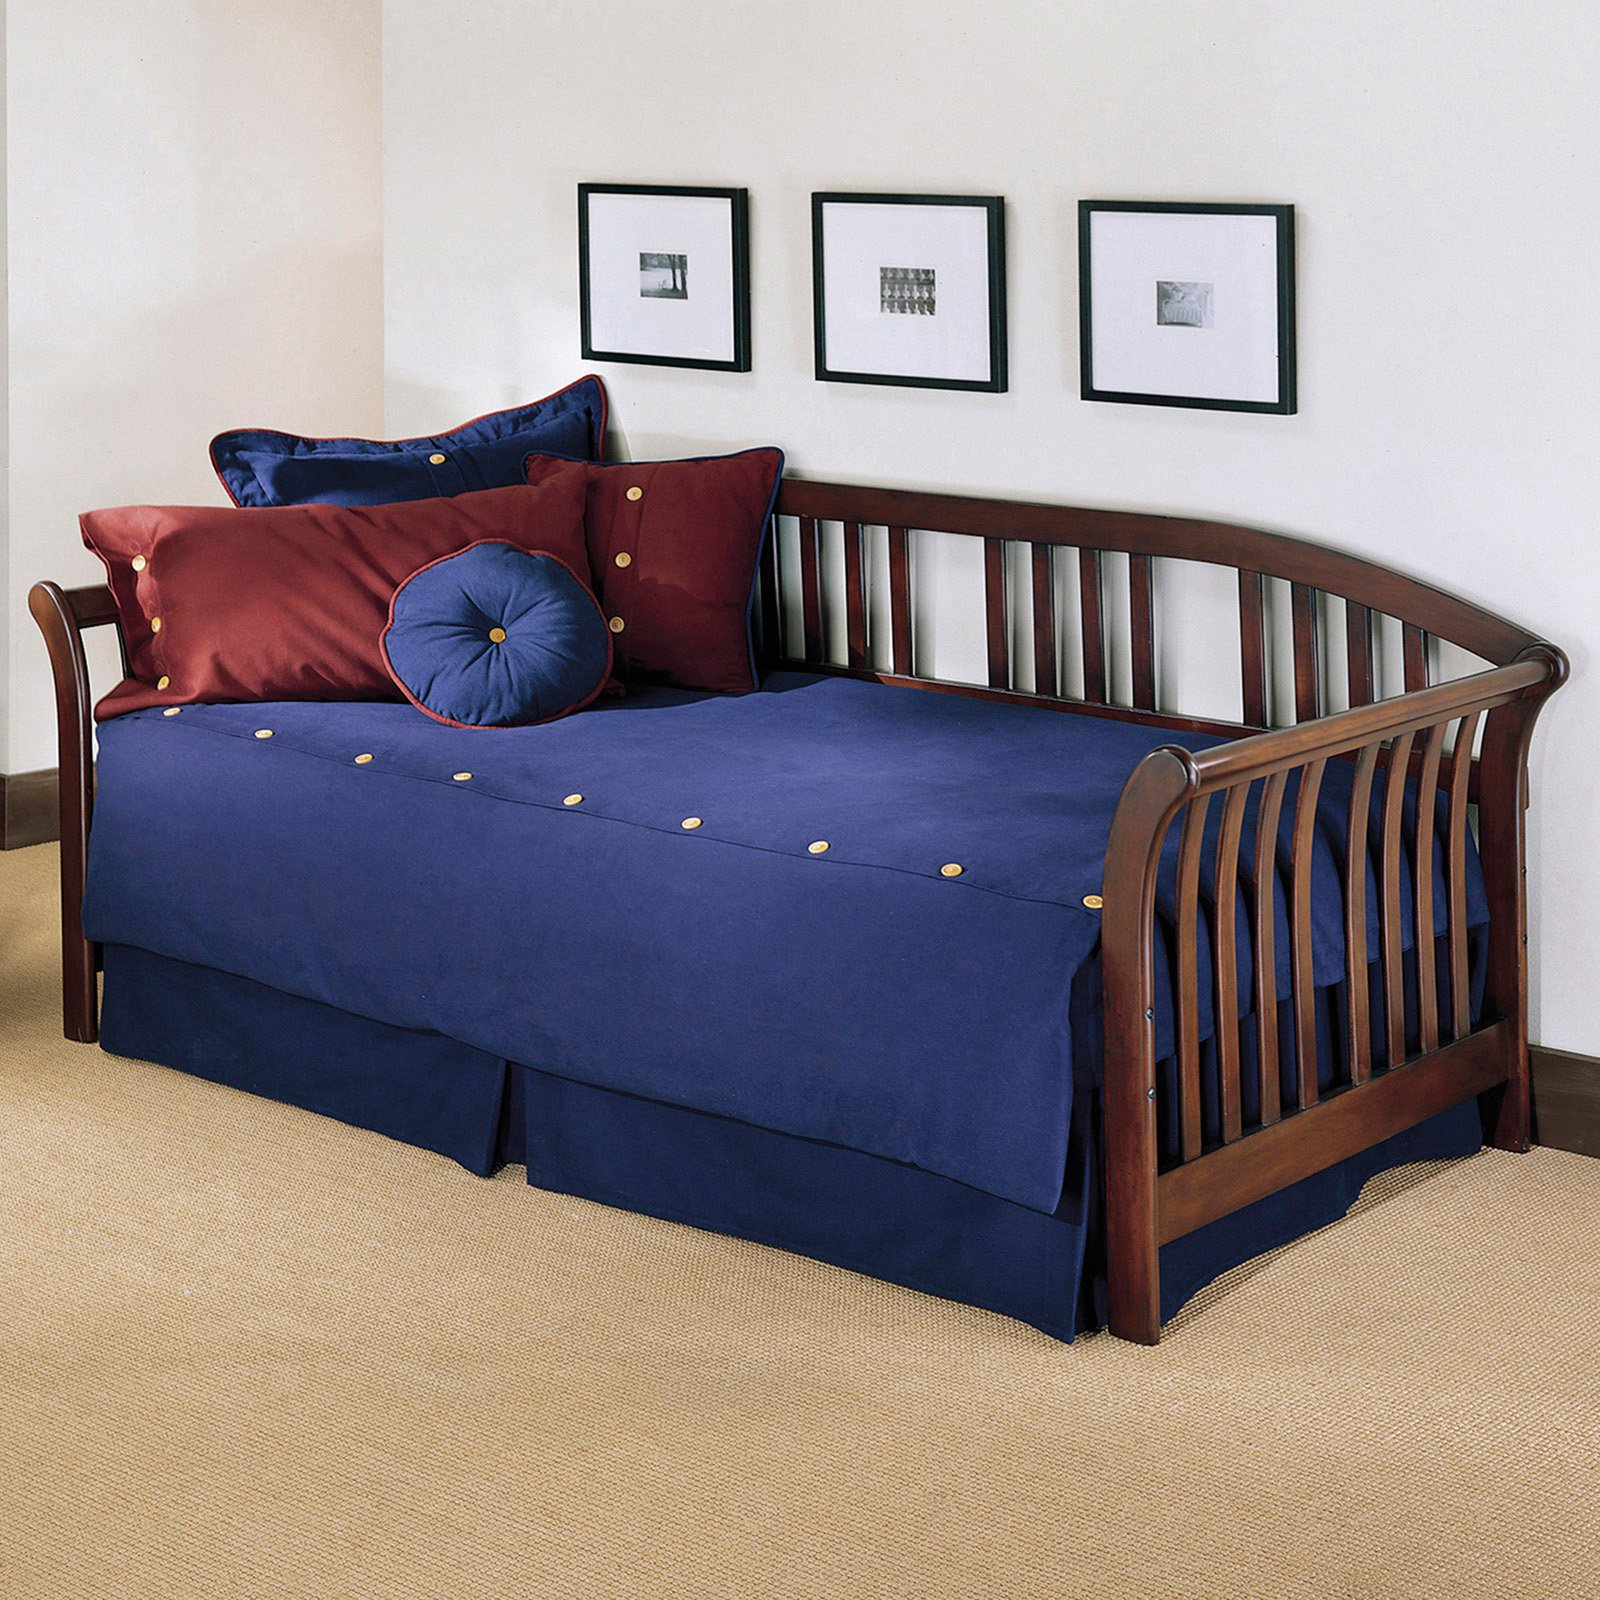 Salem Complete Wood Daybed With Link Spring Support Frame And Pop Up